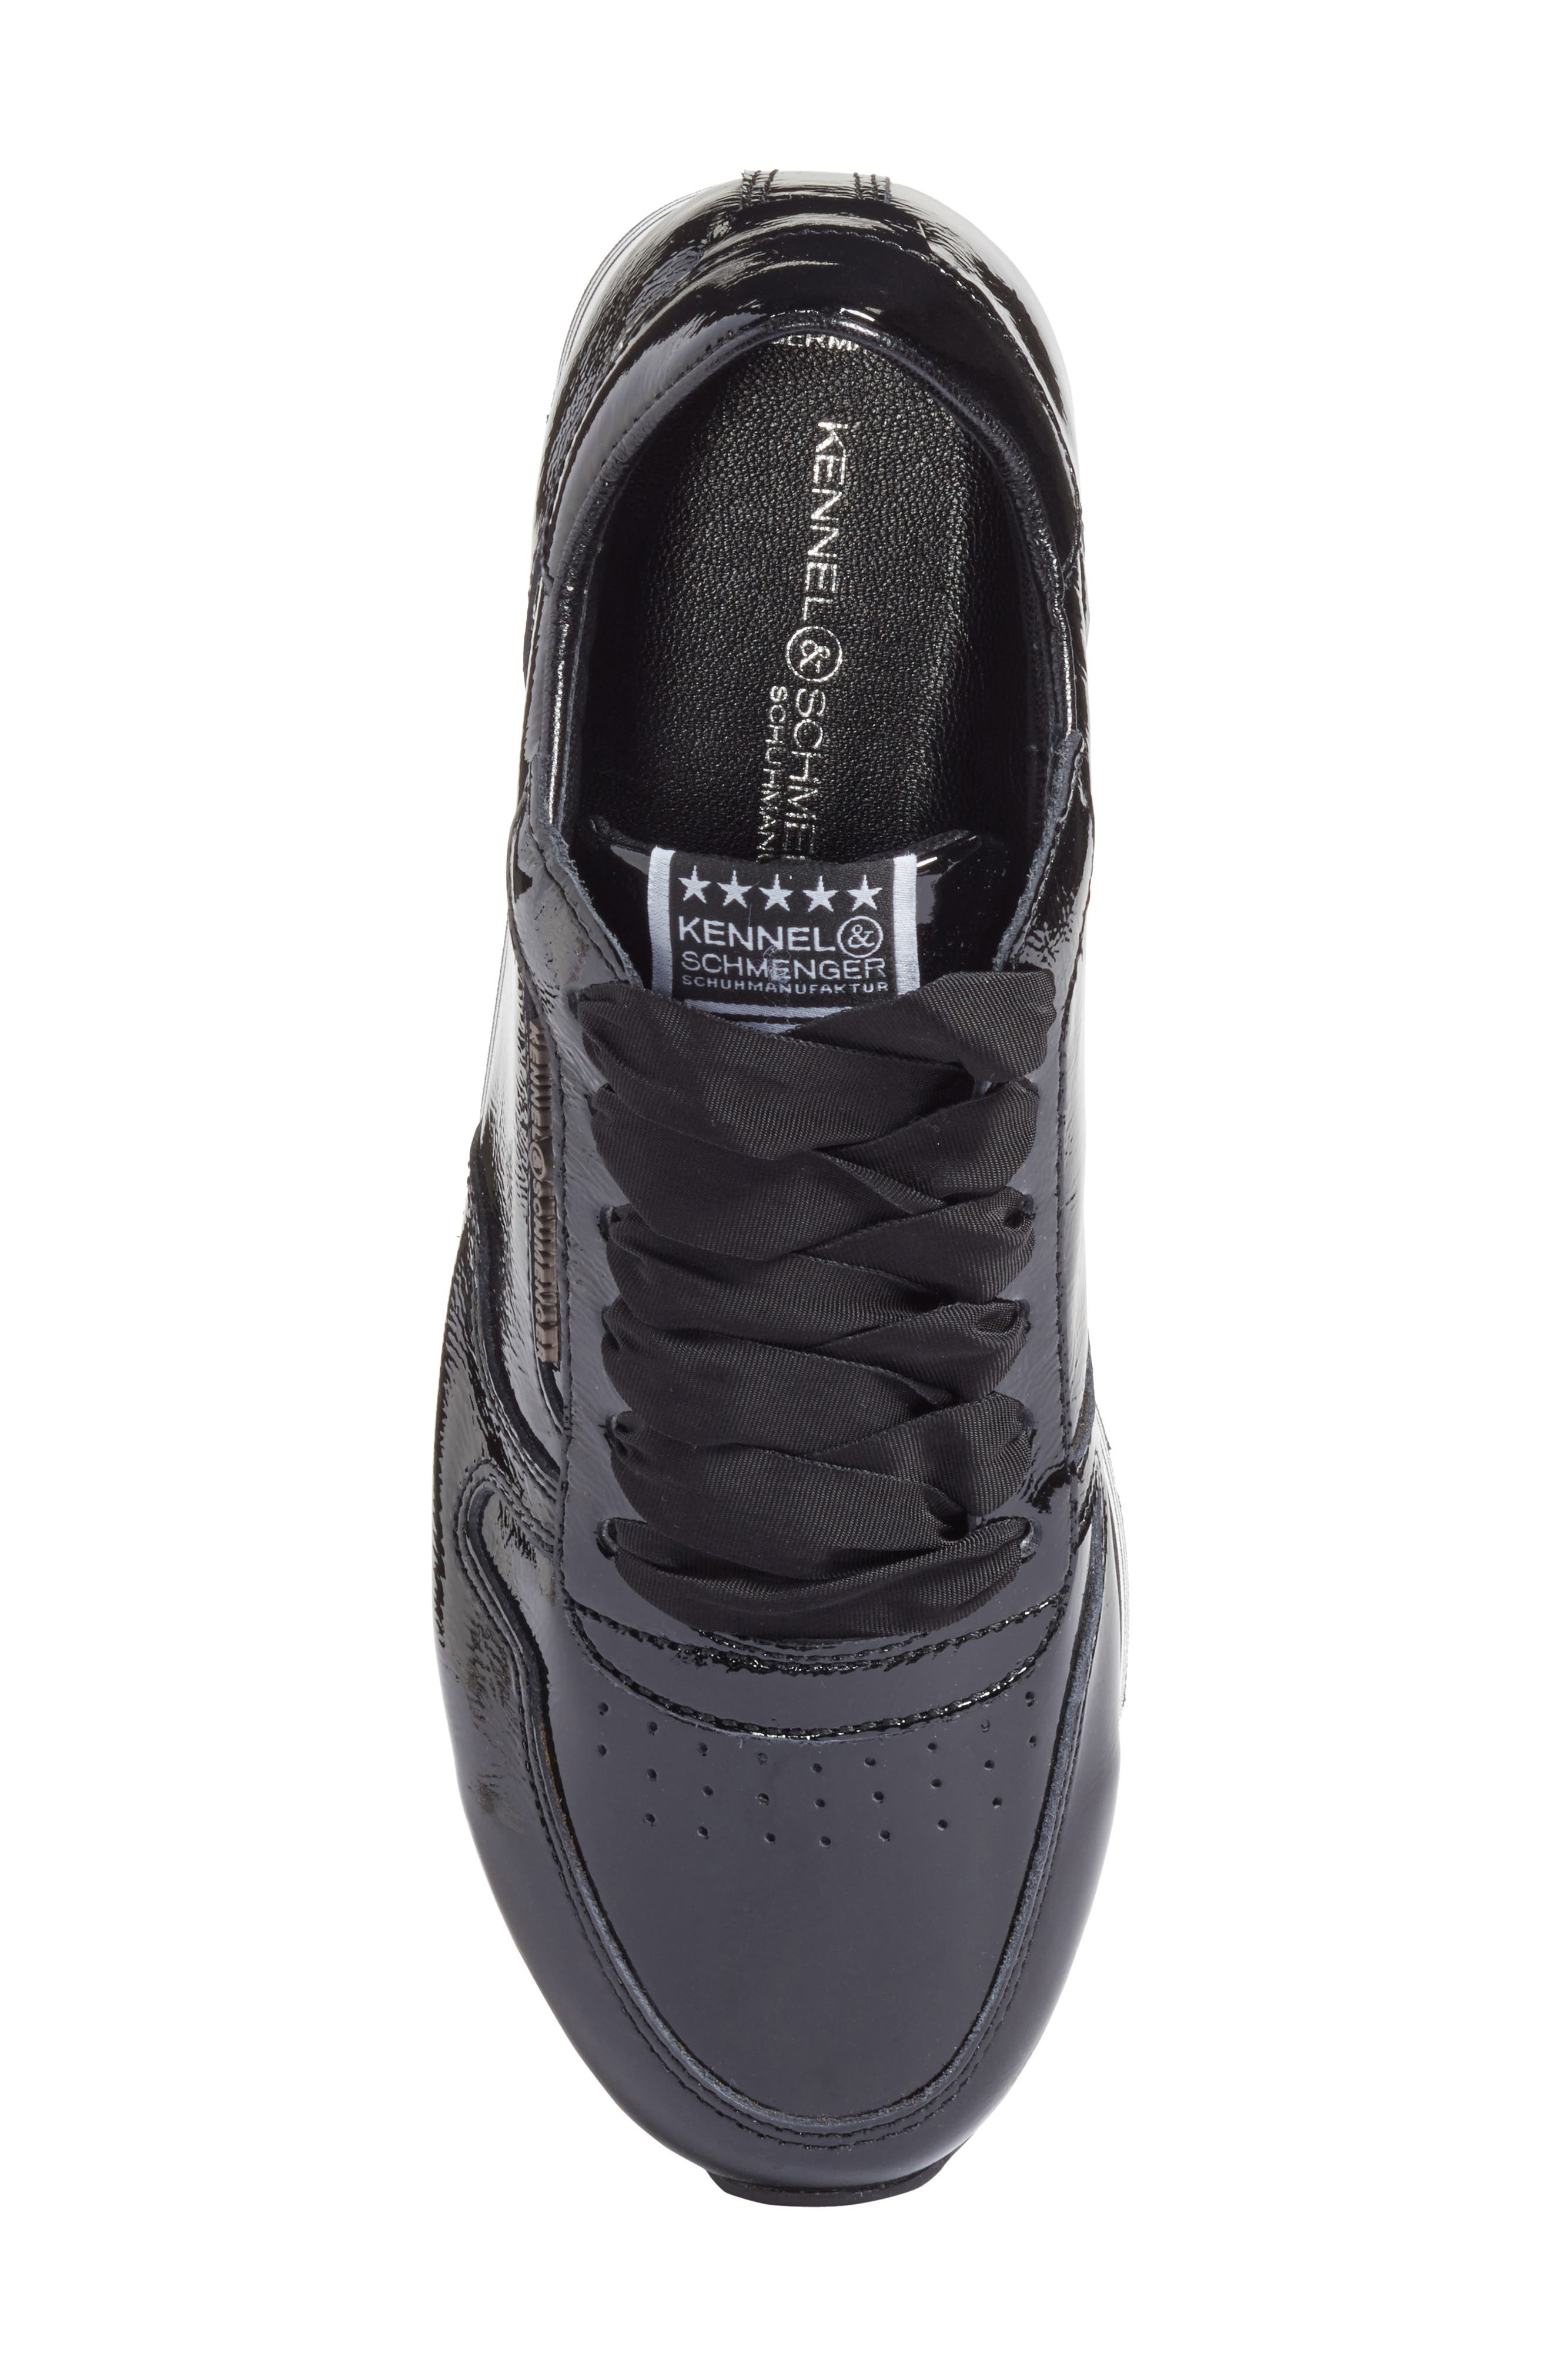 Kennel & Schmenger Nova Patent Leather Sneaker,                             Alternate thumbnail 5, color,                             001